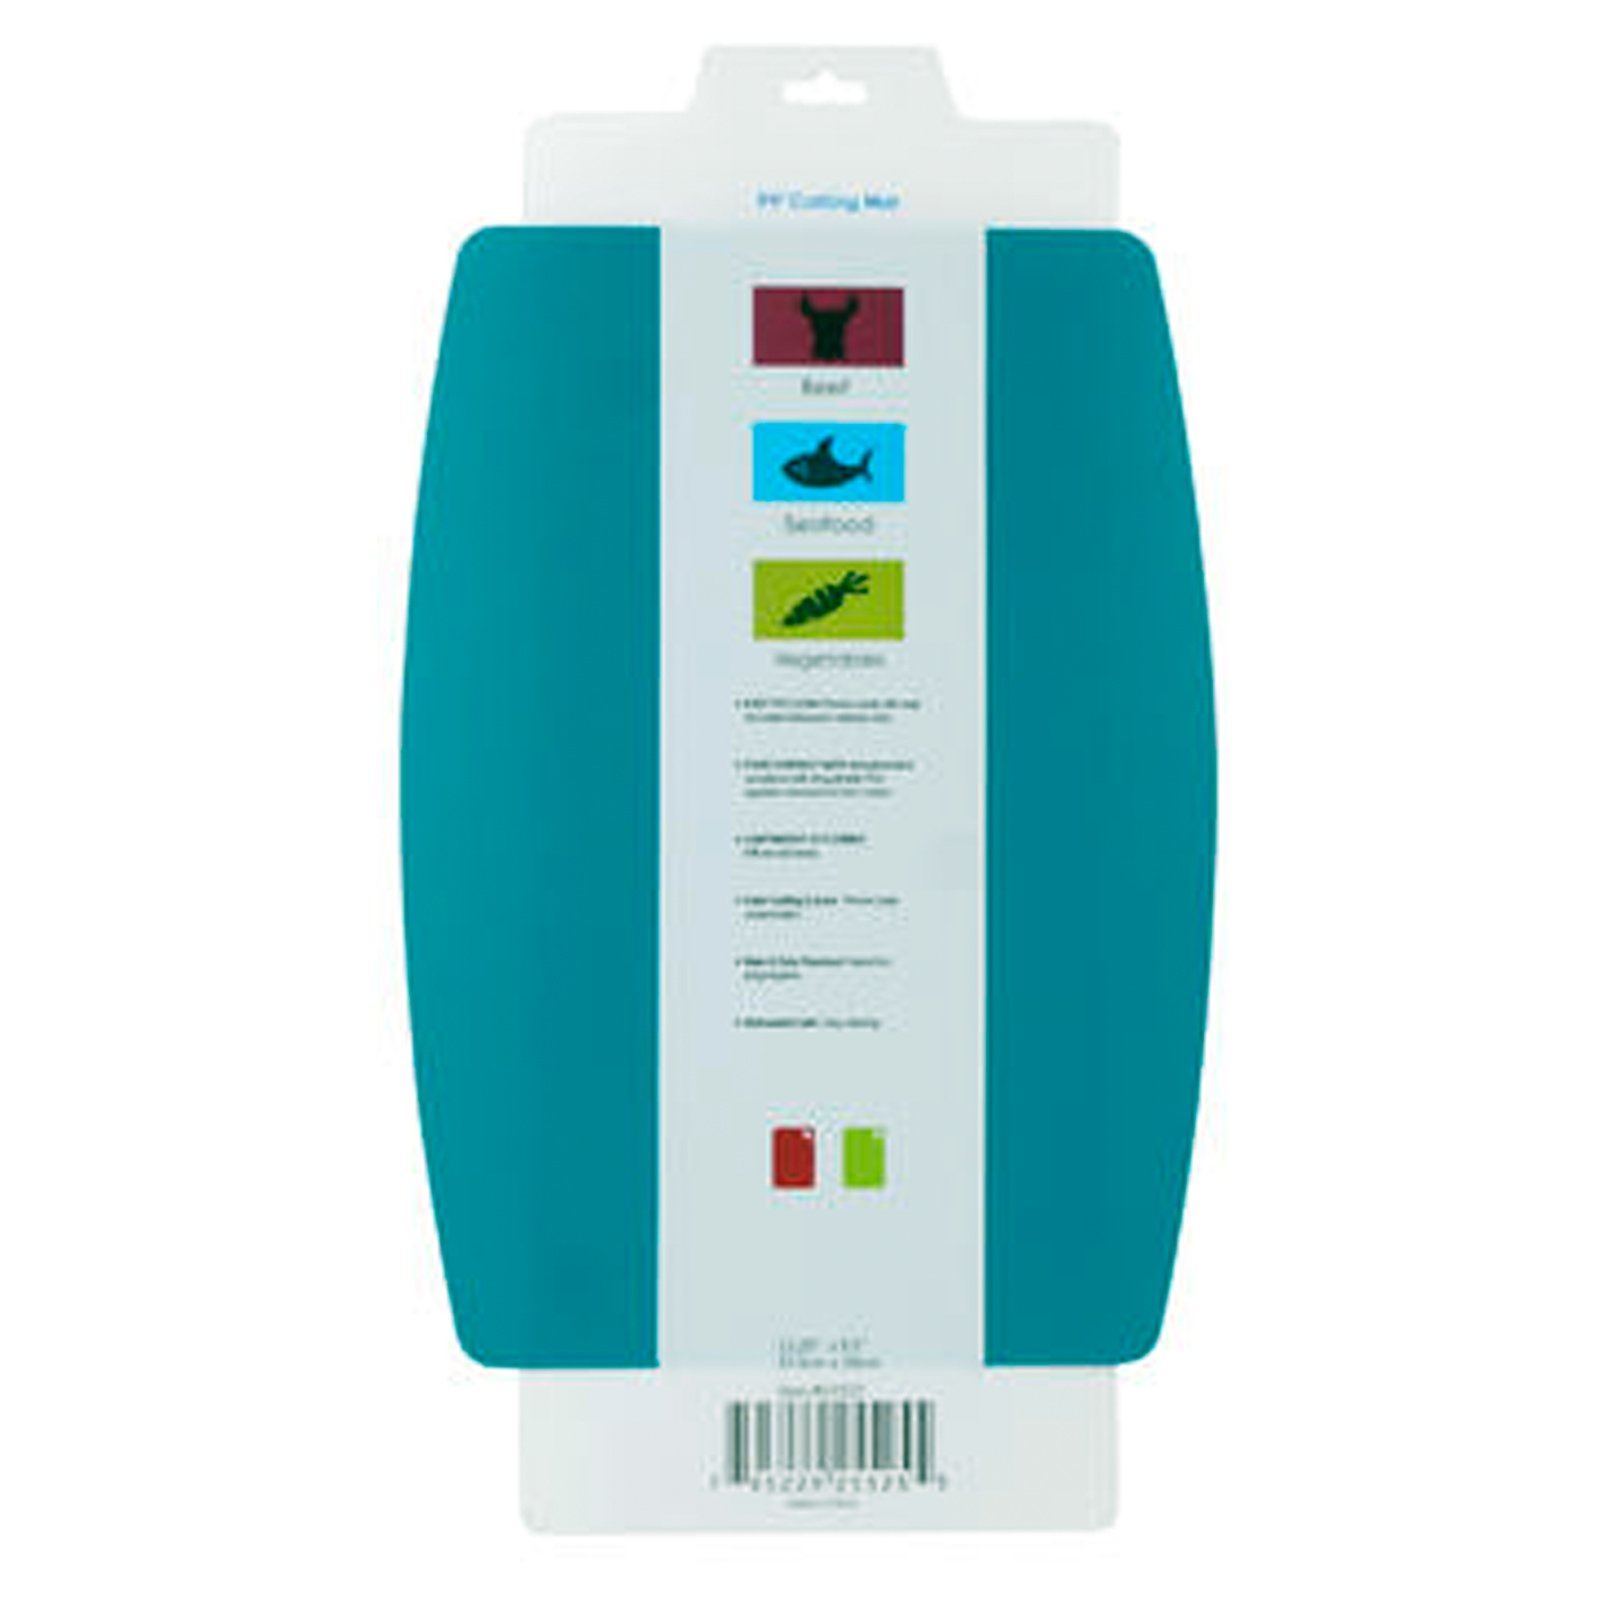 Universal Home Non-slip Flexible Cutting Mat Food Contact Dishwasher Safe - Teal